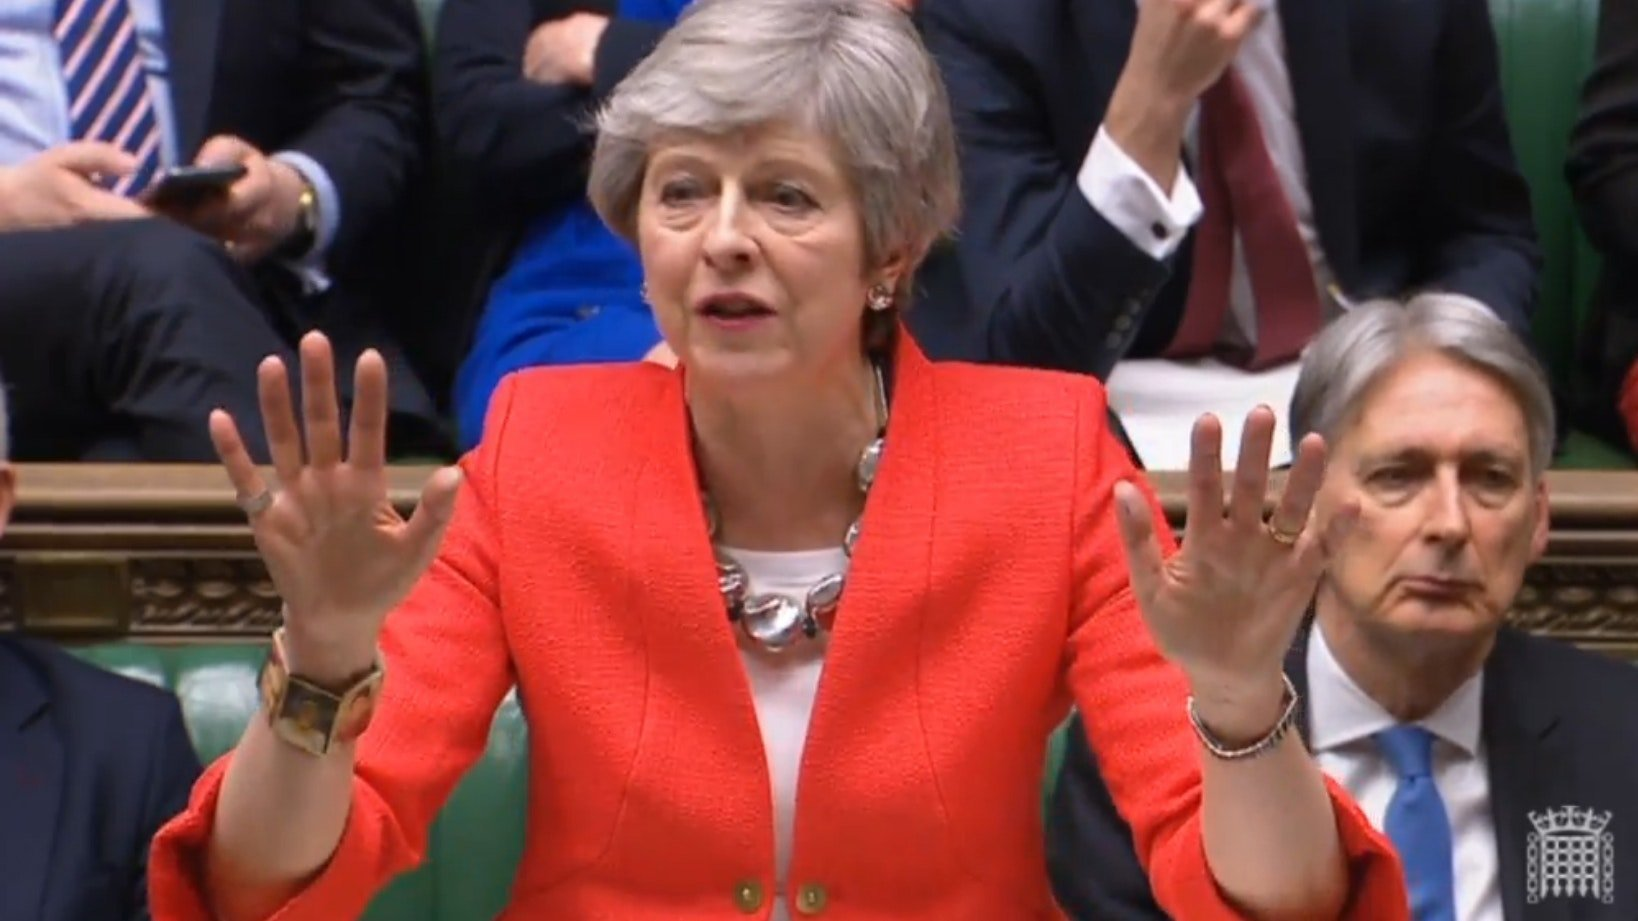 Brexit Set For Delay After Parliament Rejects Theresa May's New EU Plan